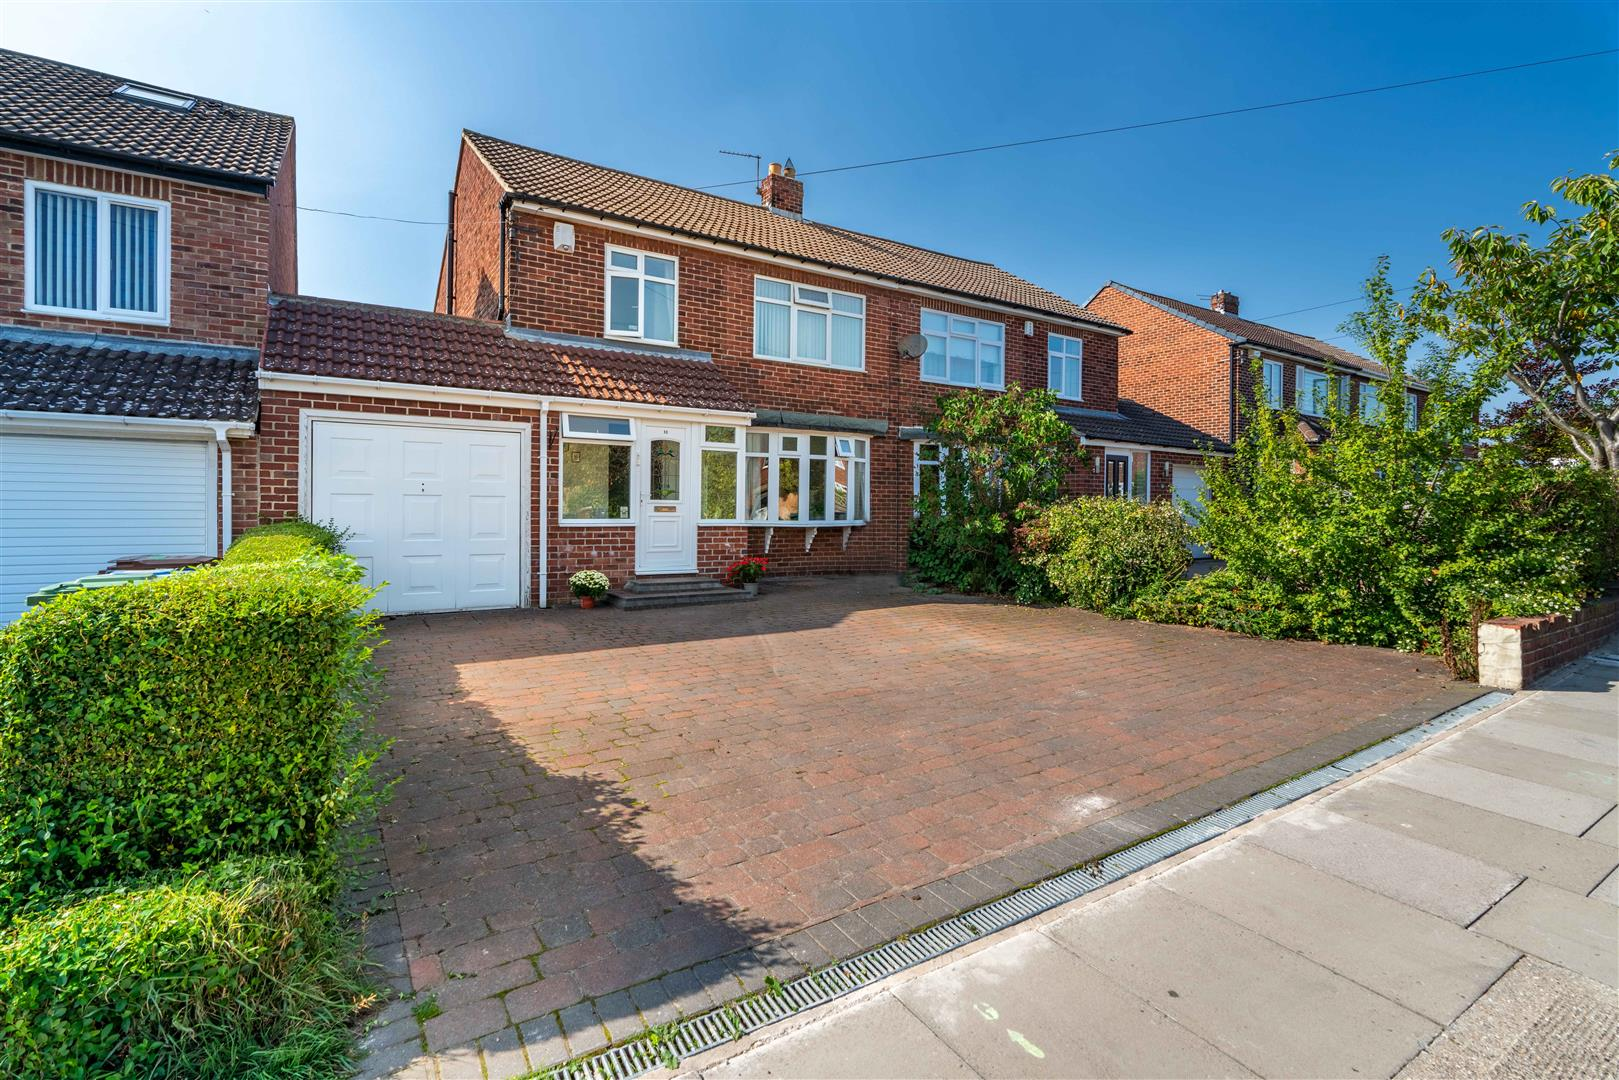 3 bed semi-detached house for sale in Greenfield Road, Brunton Park - Property Image 1